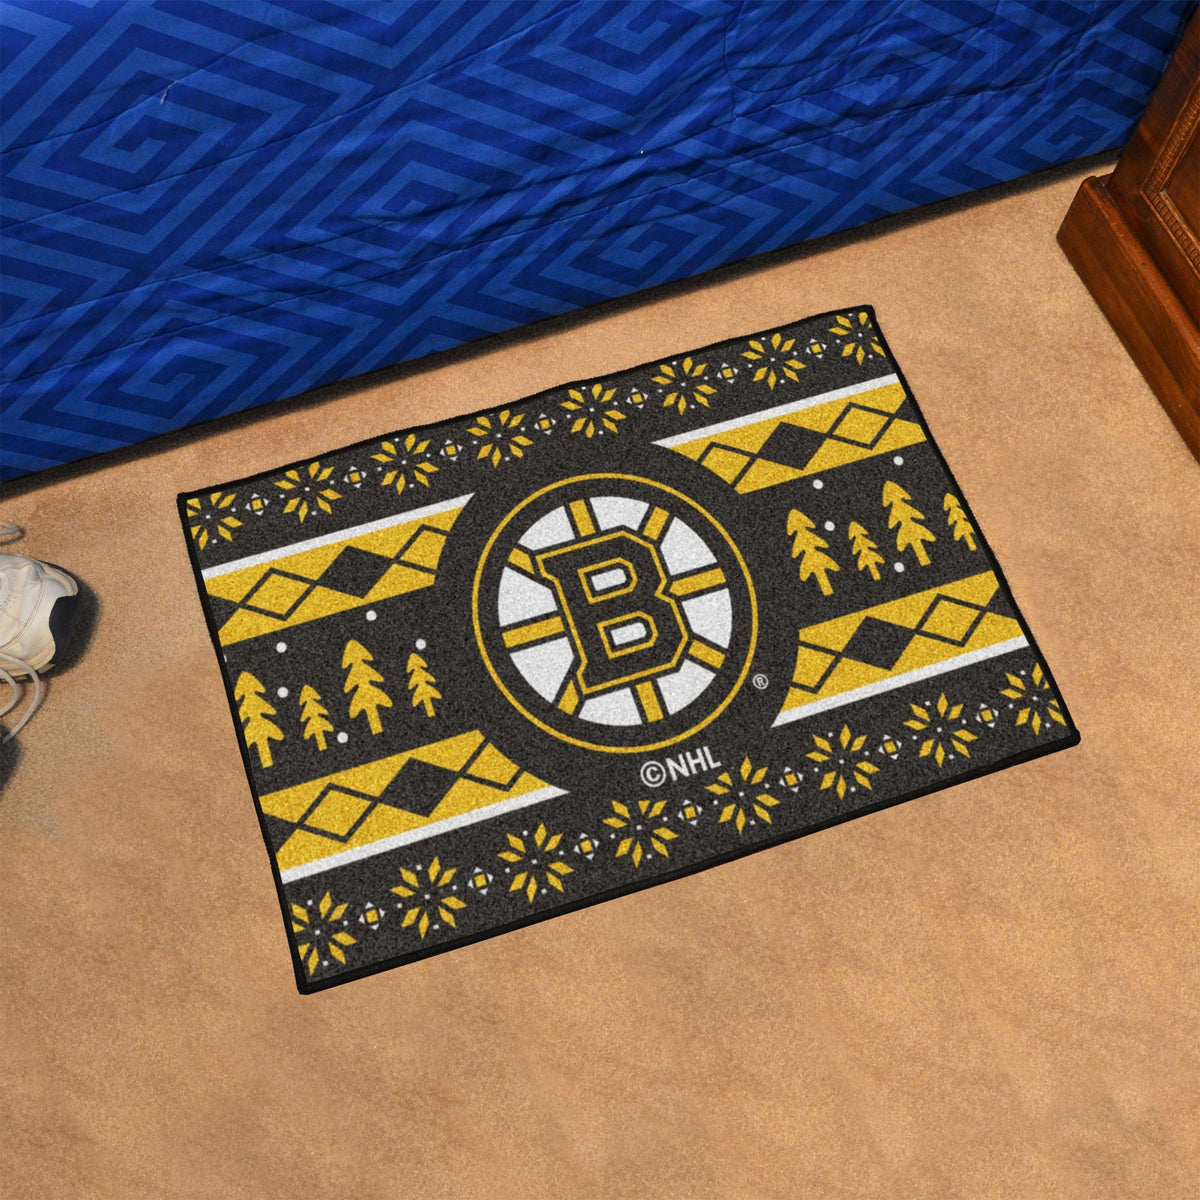 NHL - Holiday Sweater Starter Mat NHL Mats, Rectangular Mats, Holiday Sweater Starter Mat, NHL, Home Fan Mats Boston Bruins